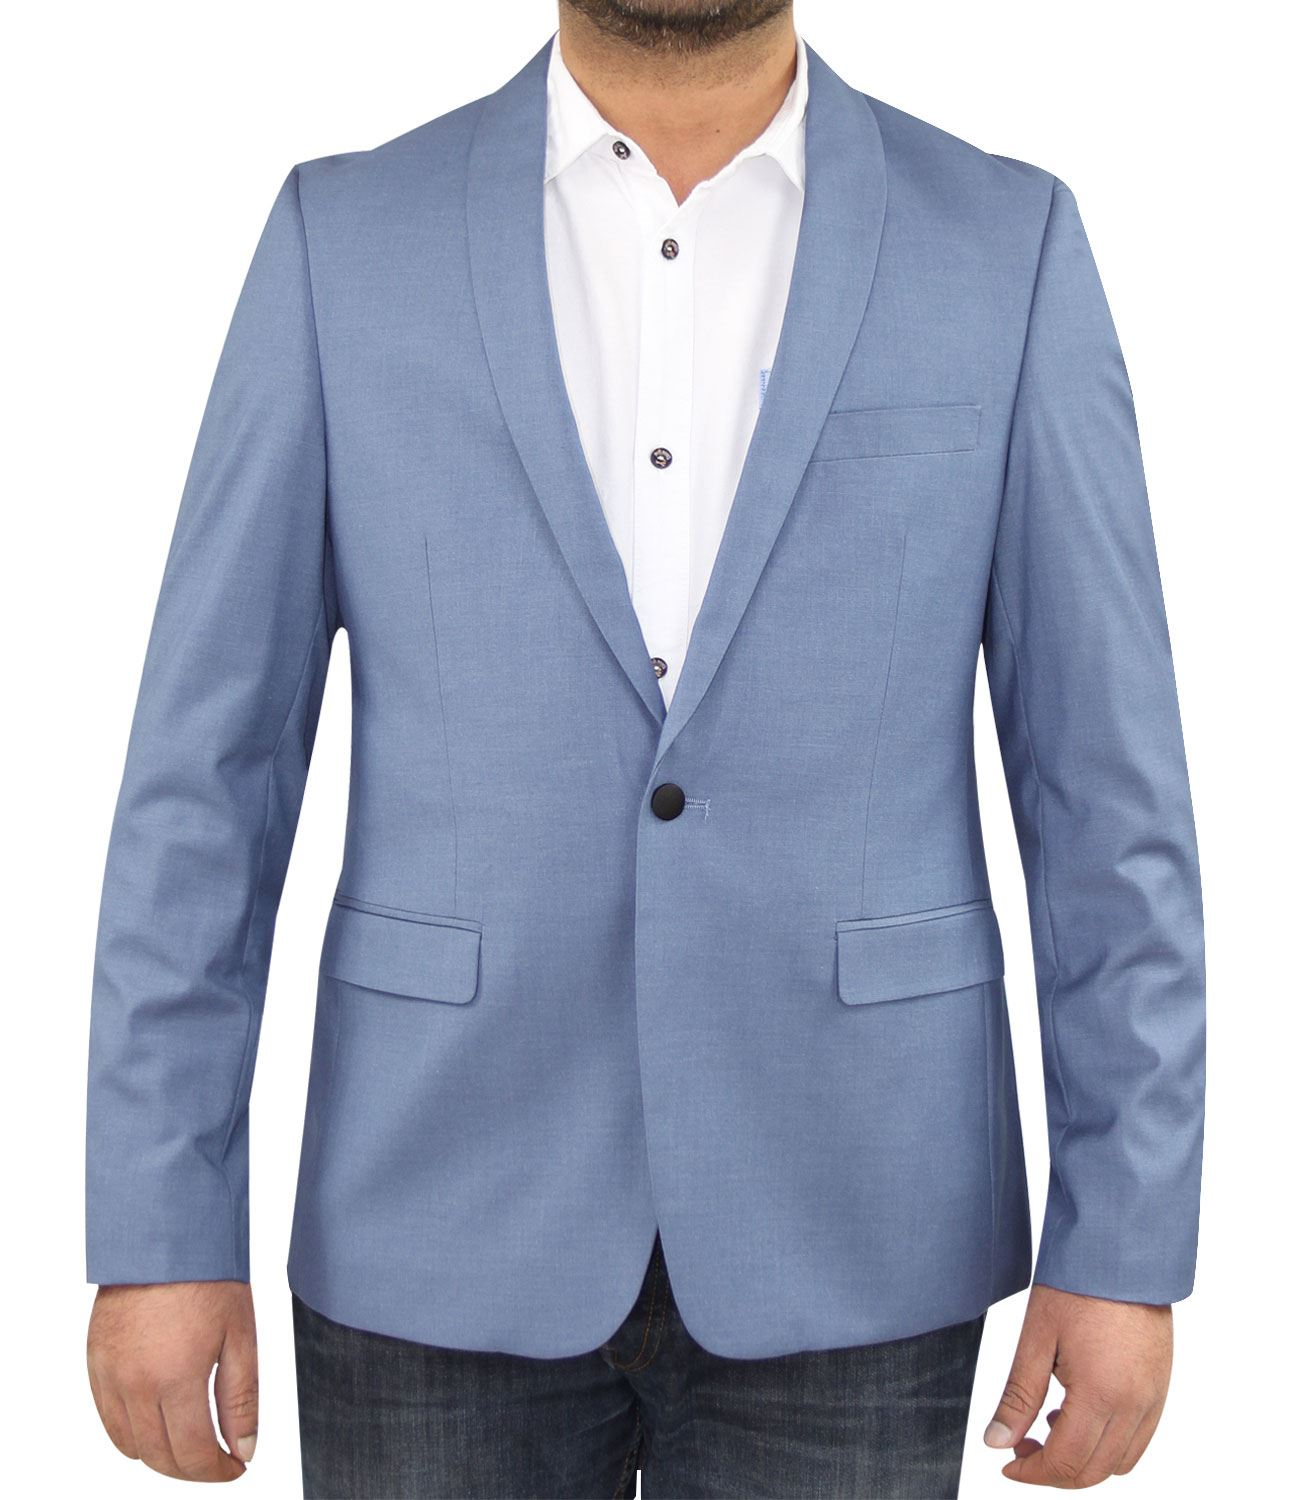 Mens New Formal Stretchable Slim Fit Suit Wedding Party Blazer ...